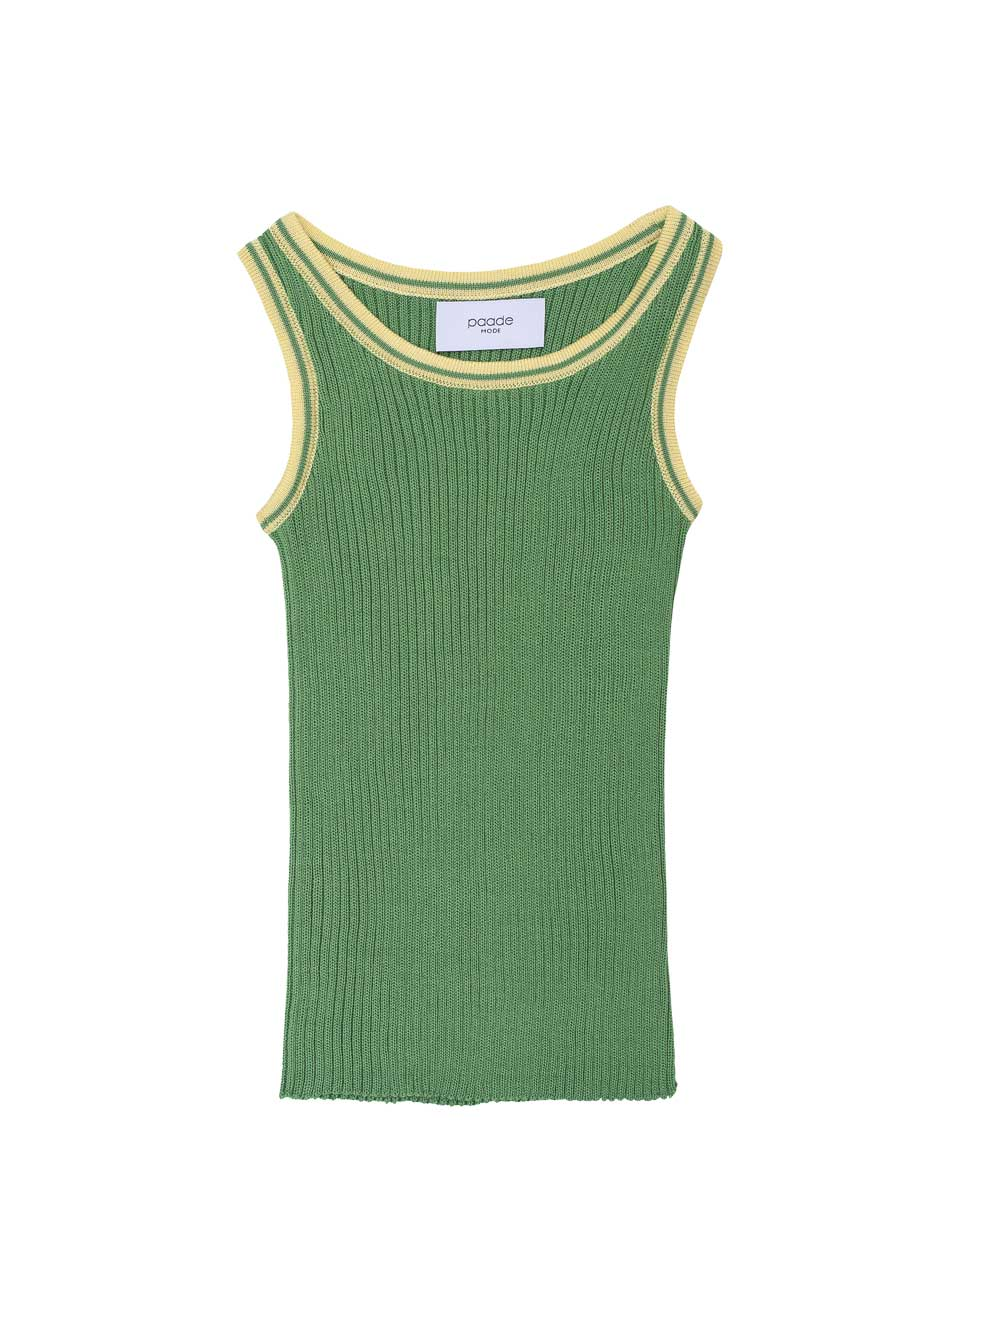 Green Seamless Knit Tank